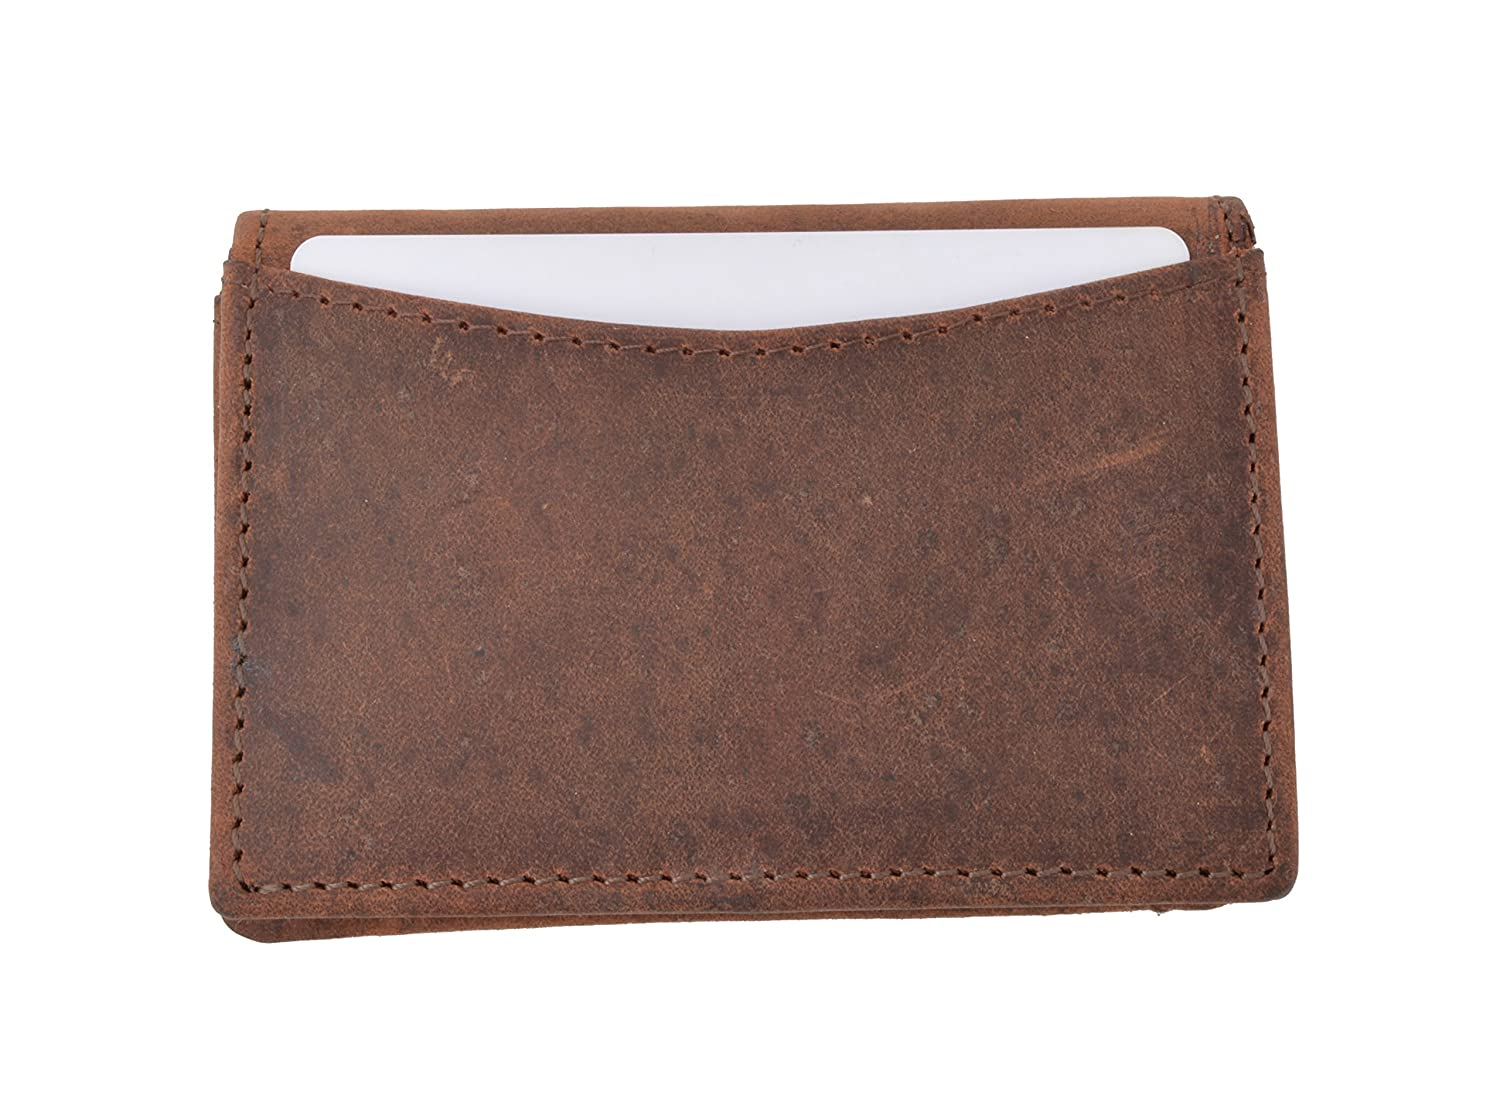 Soft Vintage Genuine Leather RFID Business Card ID Holder with Expandable Pocket